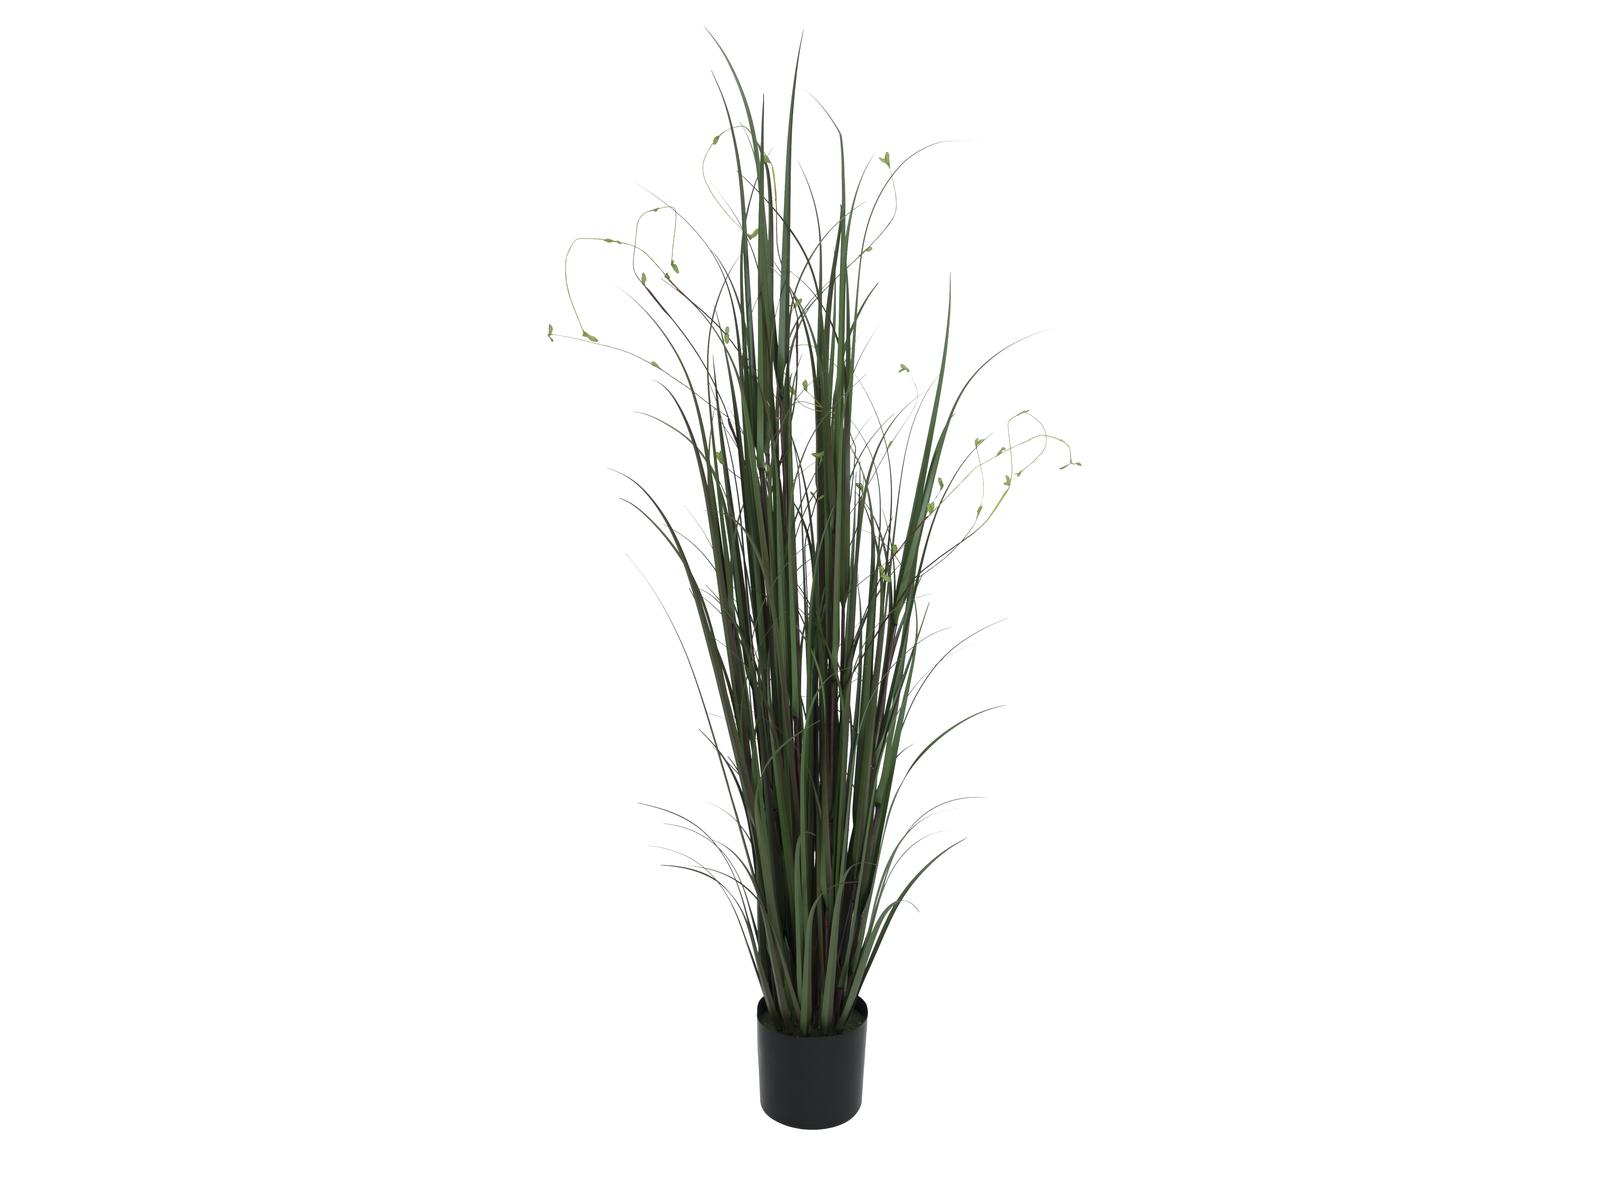 Willow branch grass, 183 cm